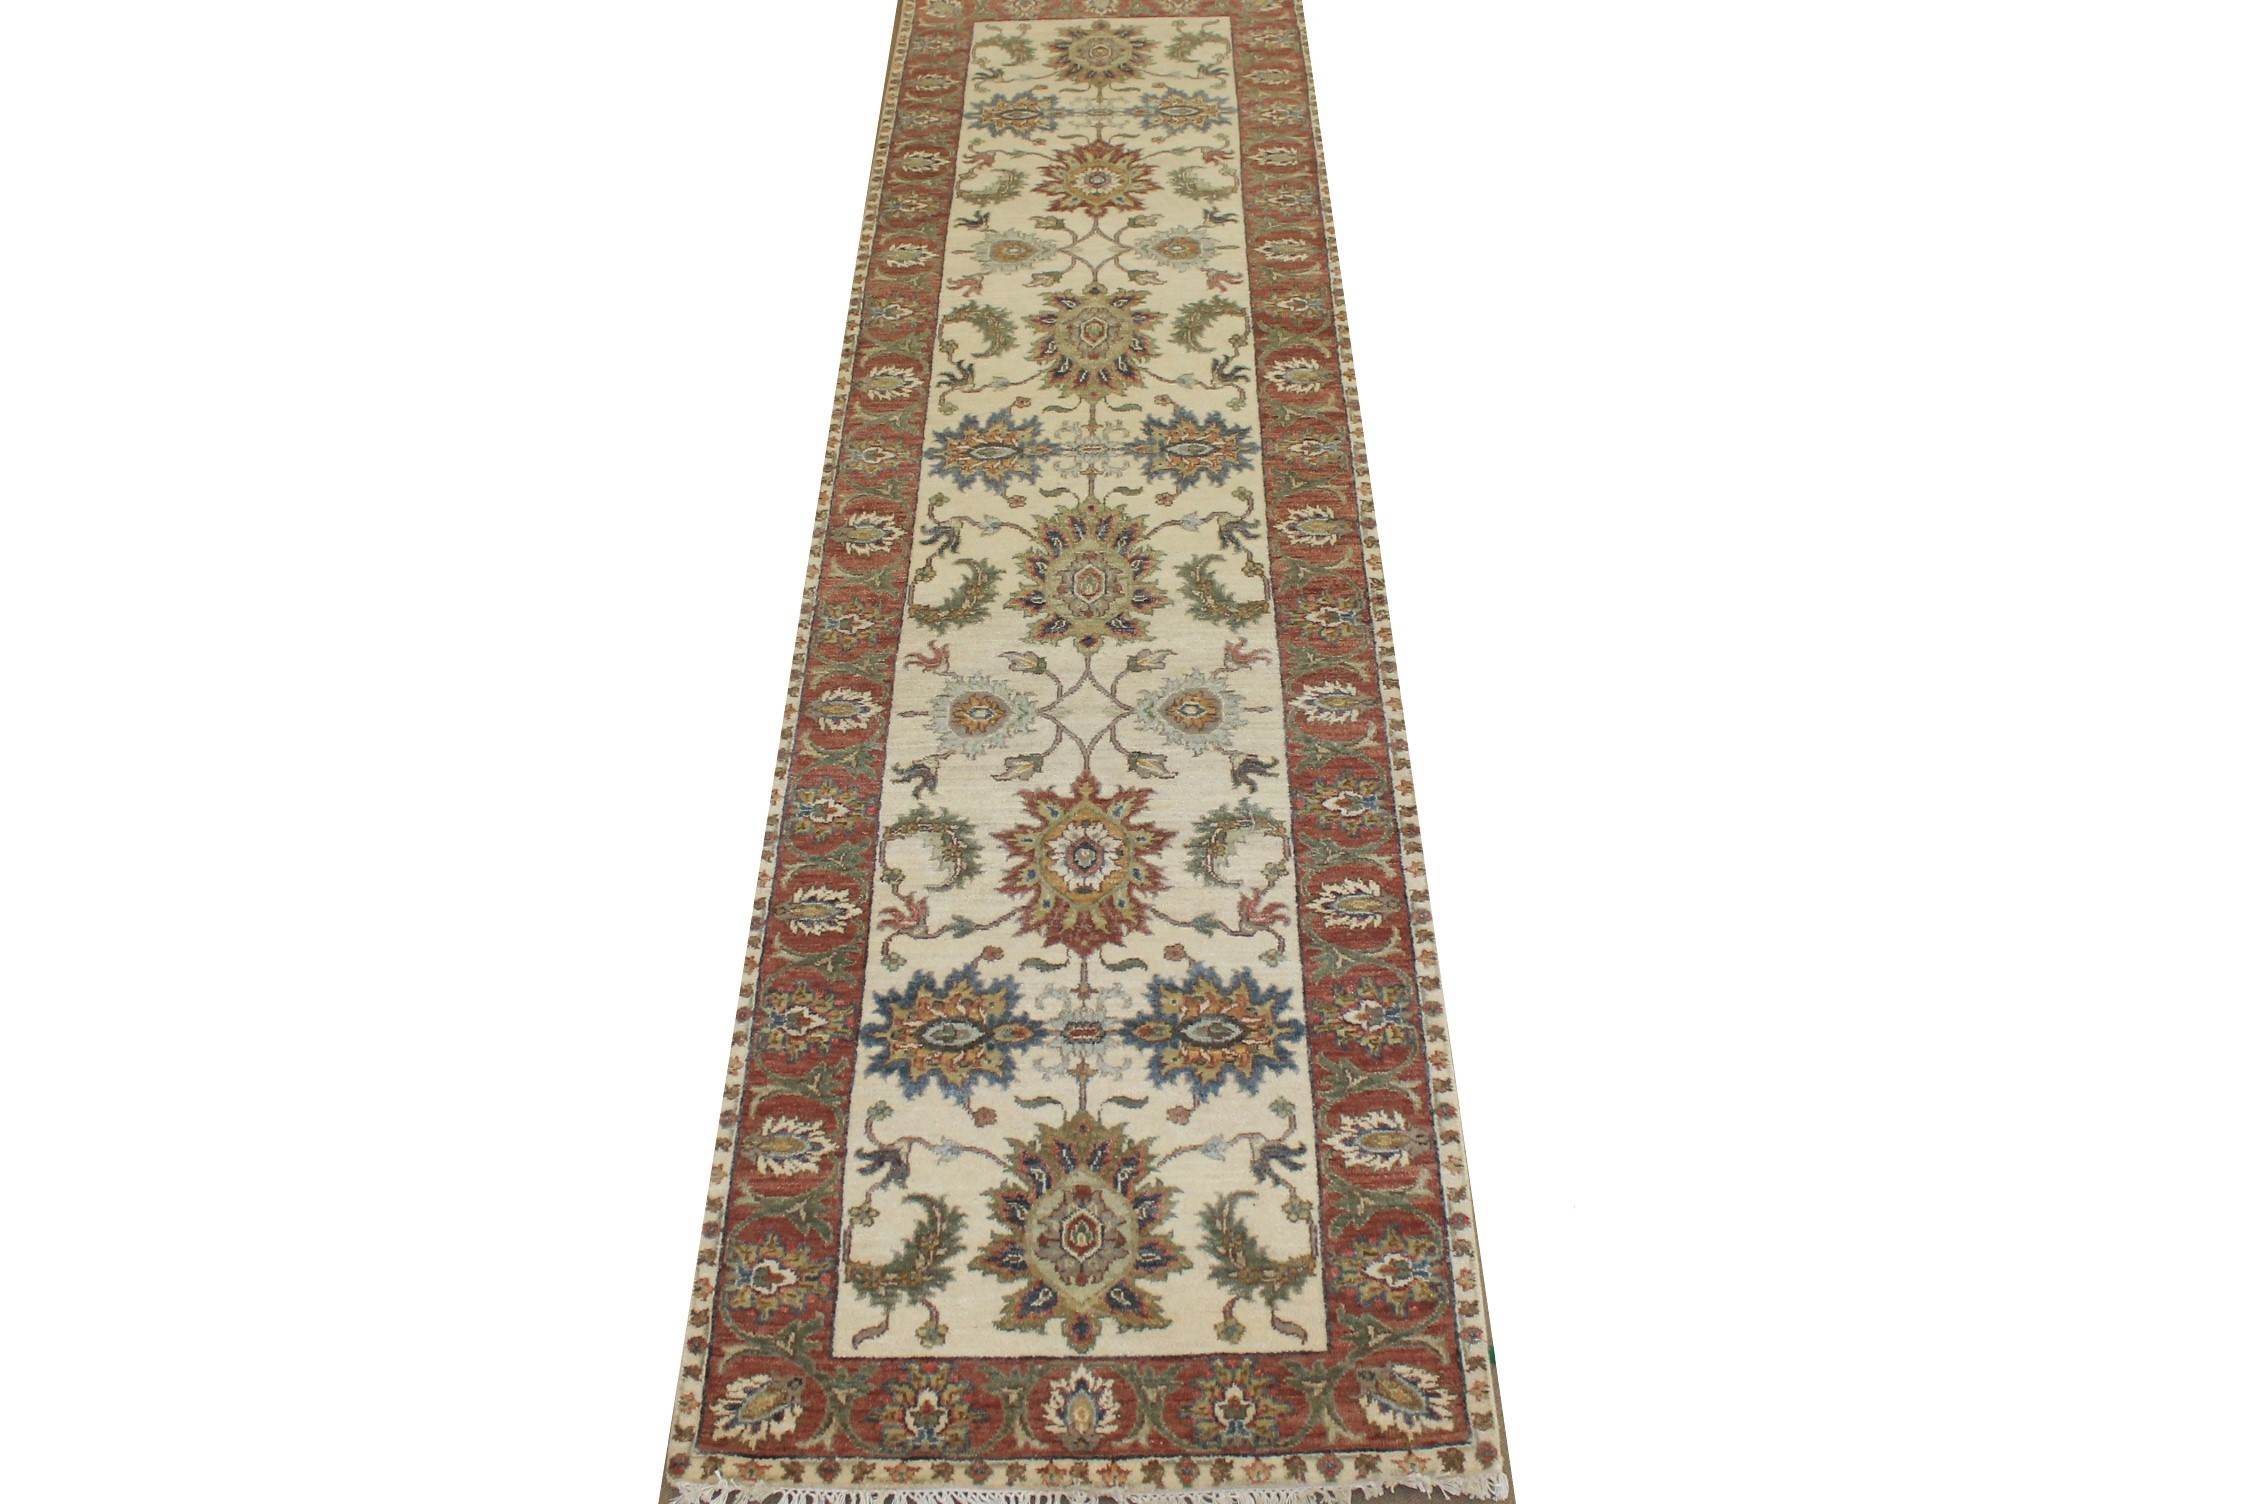 10 ft. Runner Traditional Hand Knotted Wool Area Rug - MR024777